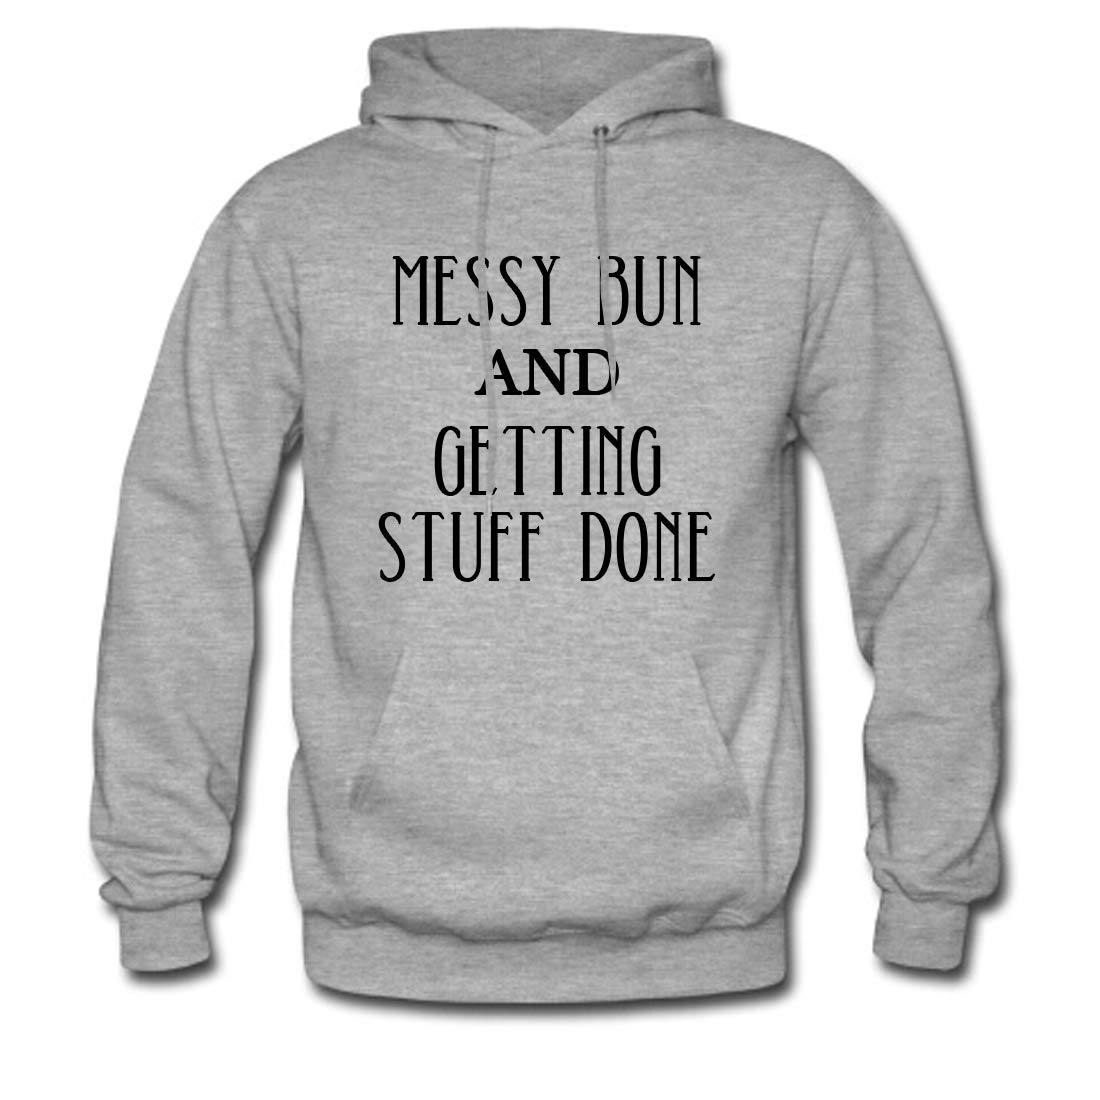 7828ce50579 Men's Classic Pullover Hoodie Sweatshirt, Messy Bun and Getting Stuff Done  Print at Amazon Men's Clothing store: